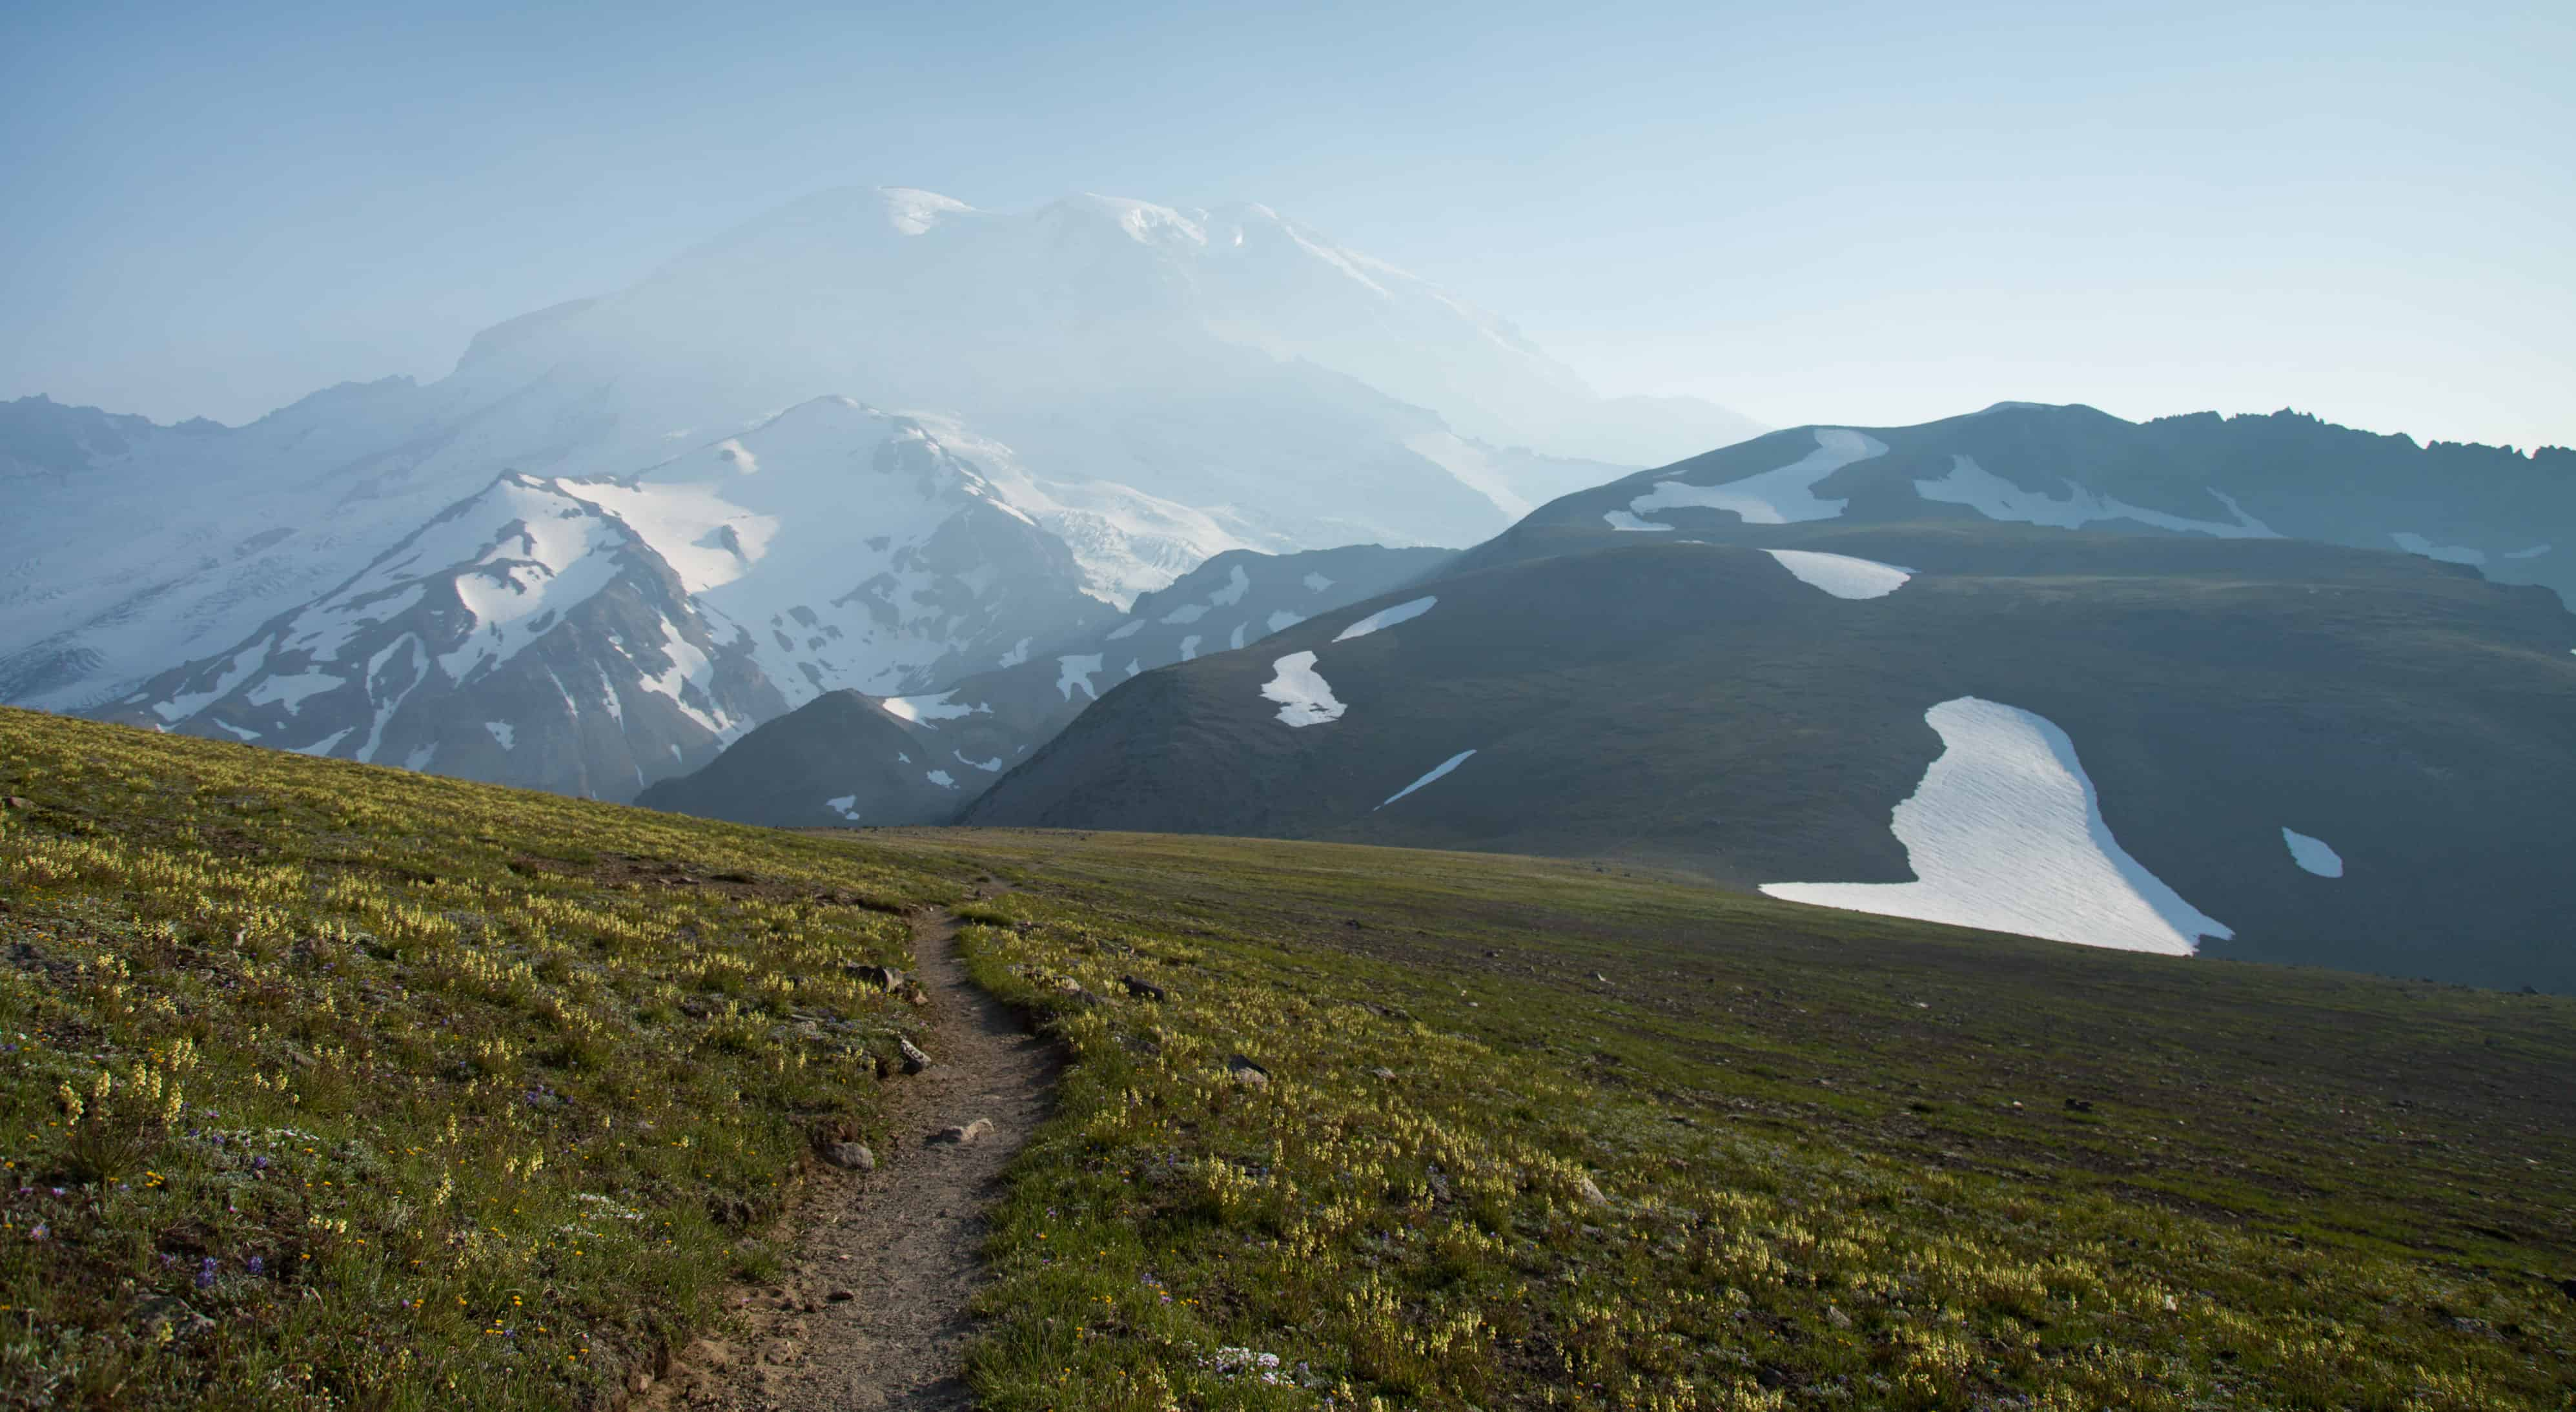 Trail leading to Third Burroughs at Mount Rainier National Park